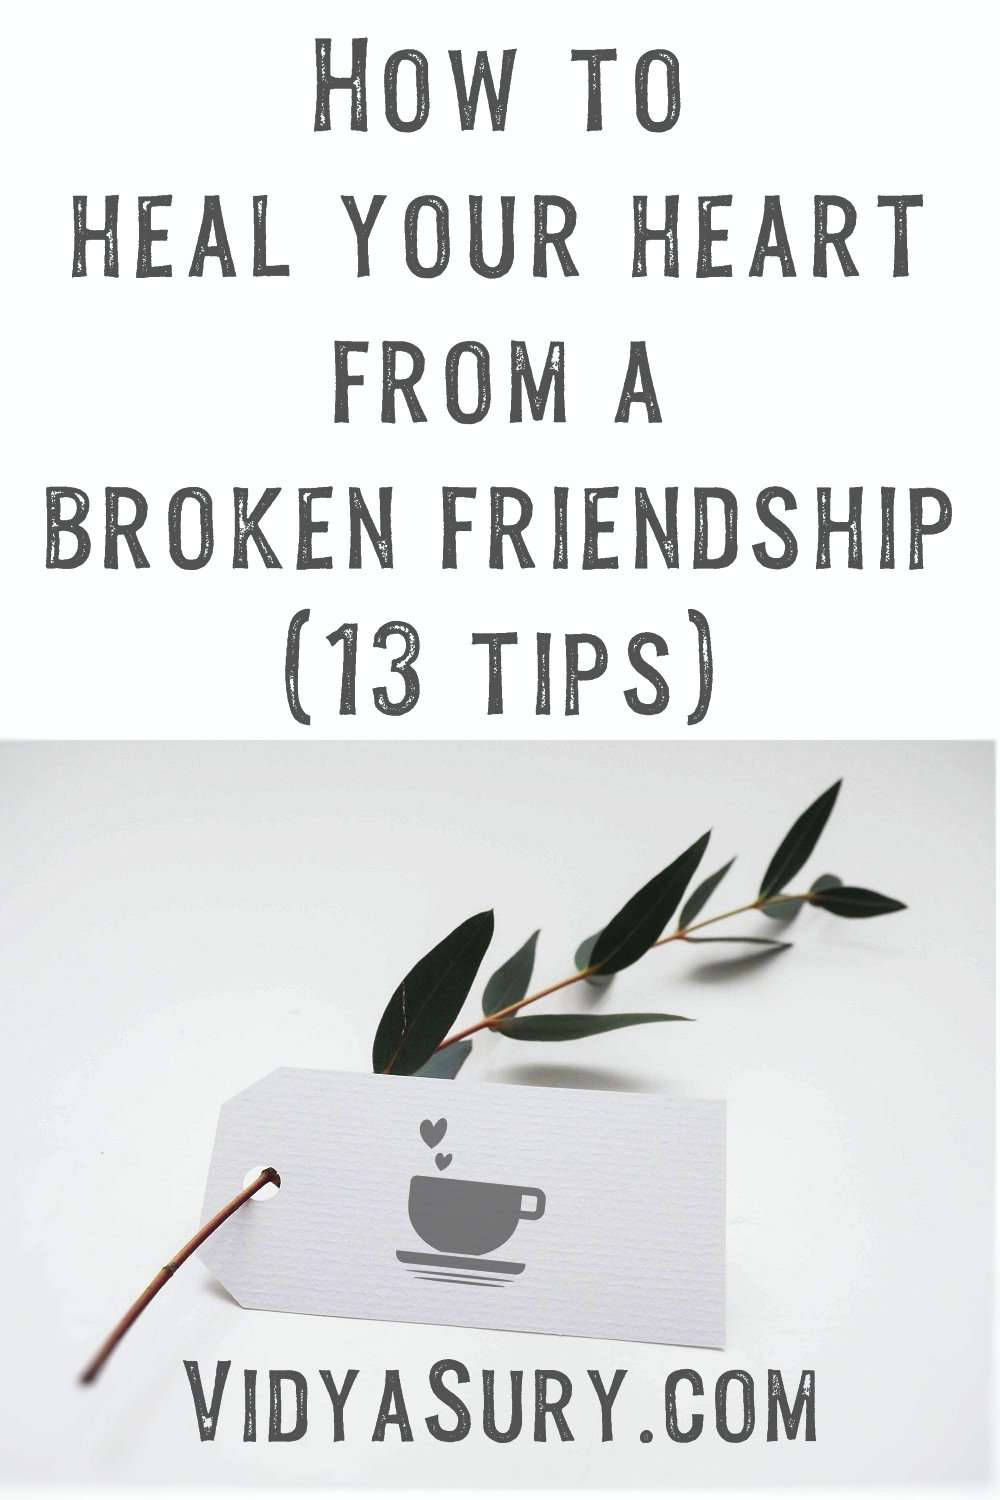 How to heal your heart